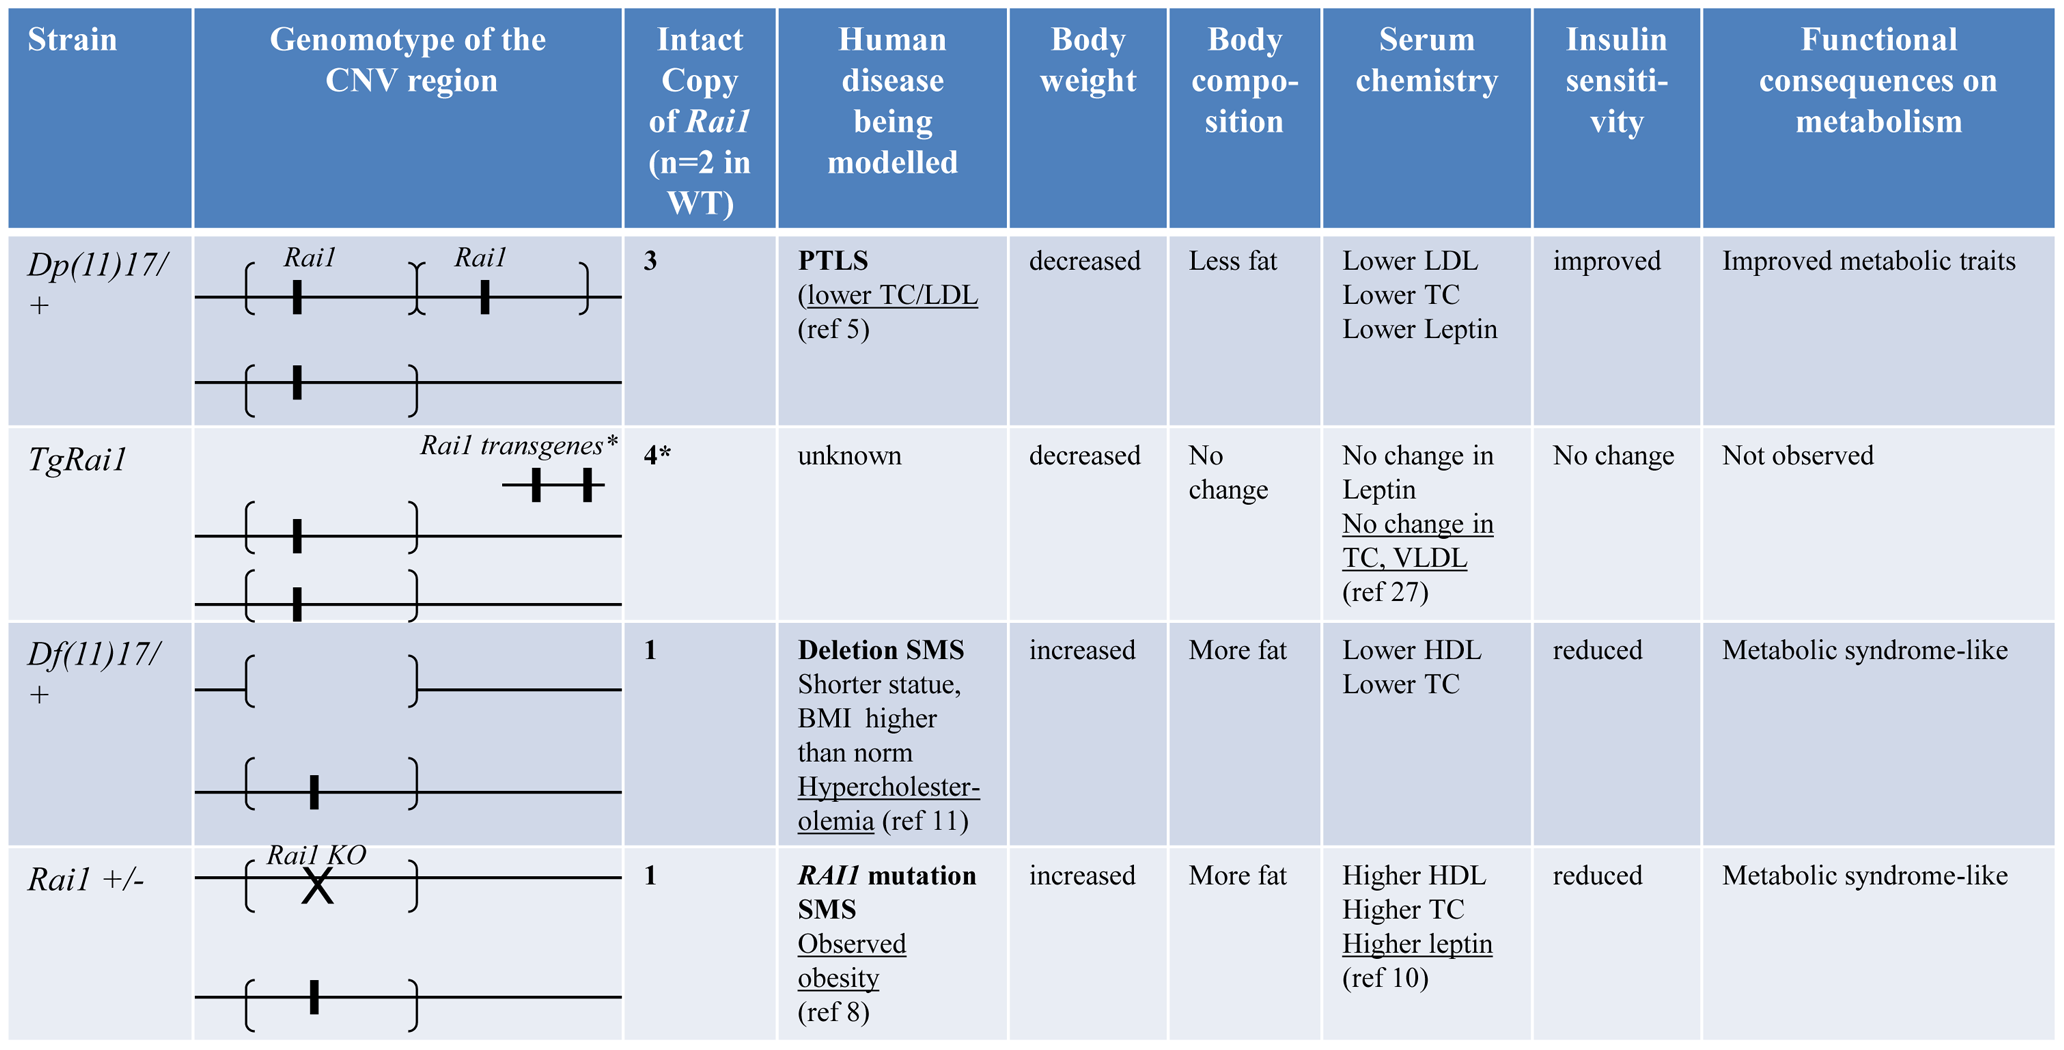 Experimental findings for specific genetic/genomic variations in this report.